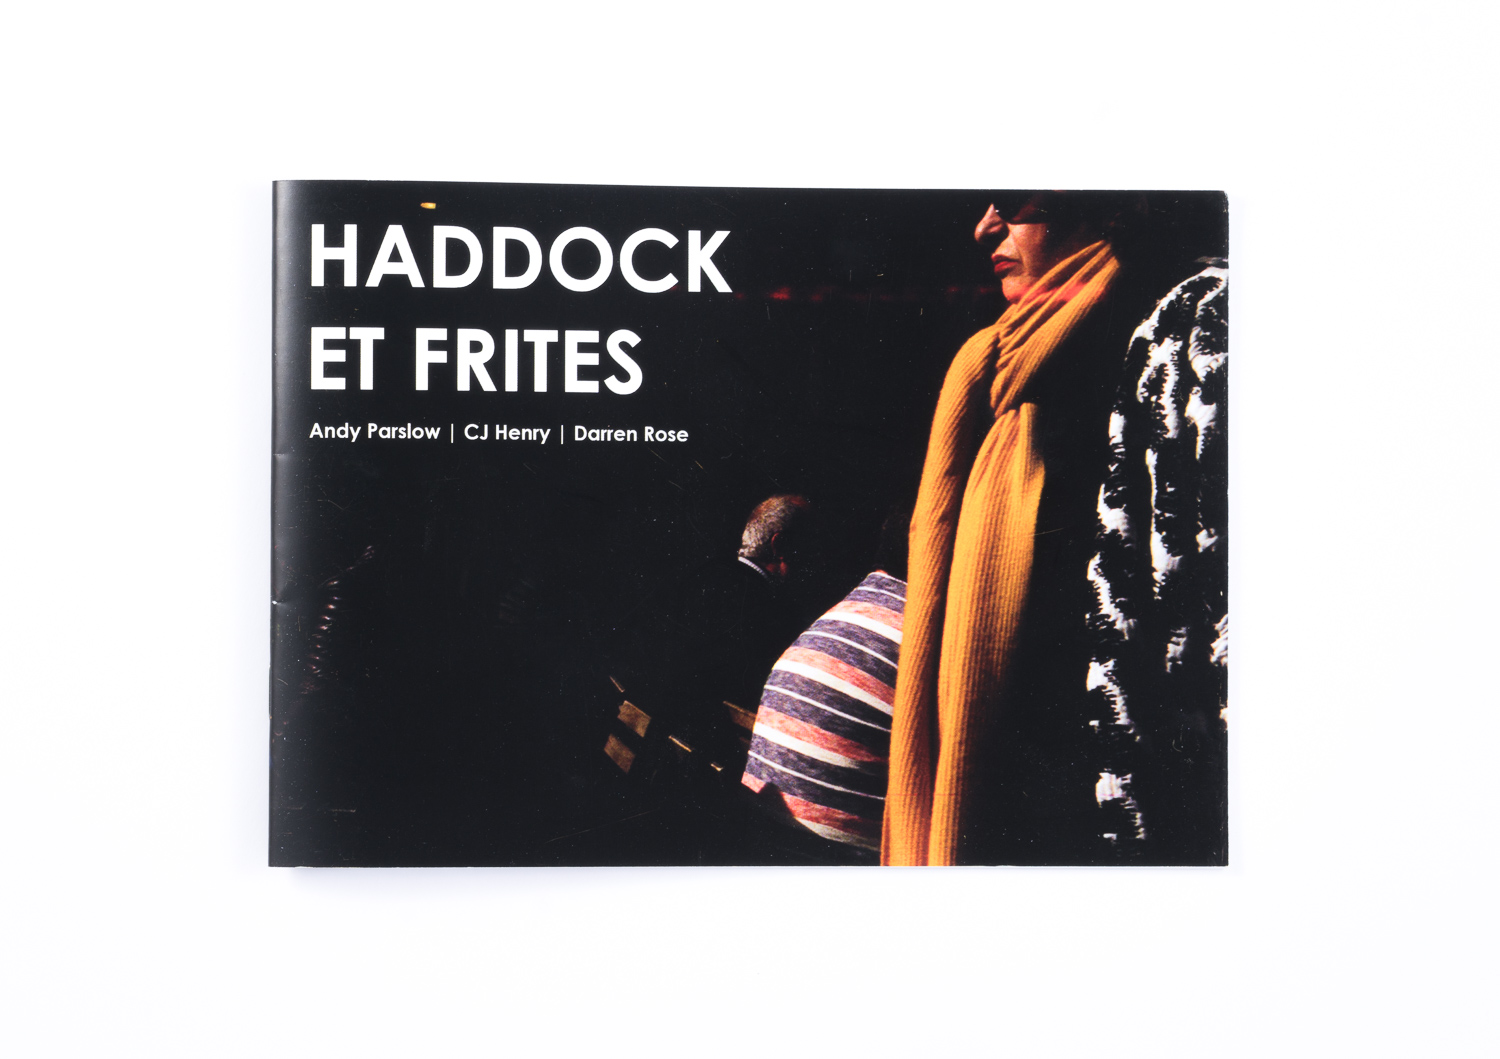 The front cover of Haddock Et Frites, our first zine. A5 landscape format.